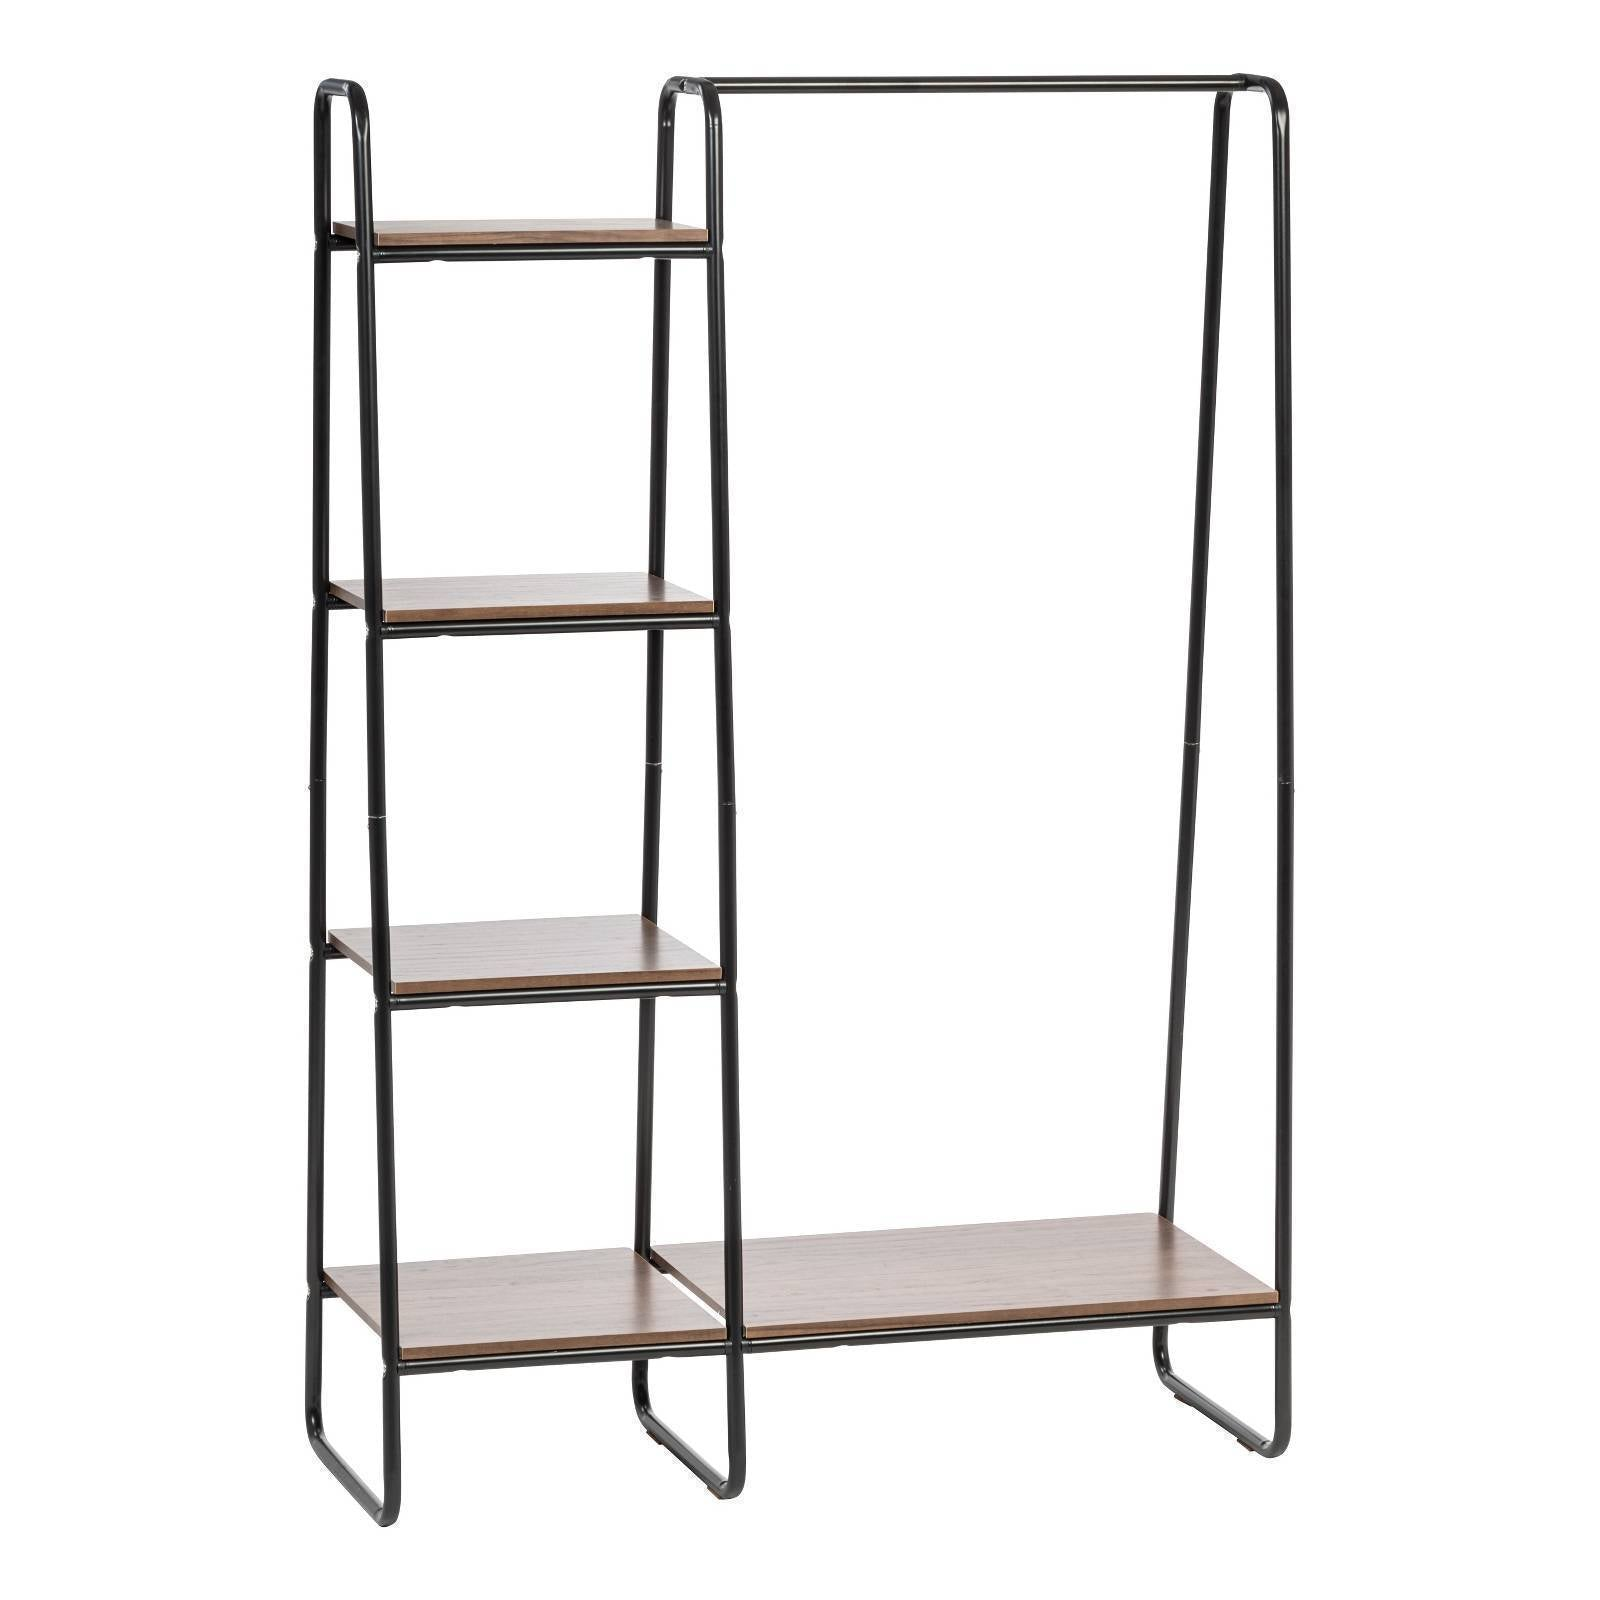 Iris Metal Garment Rack With Wood Shelves  Black